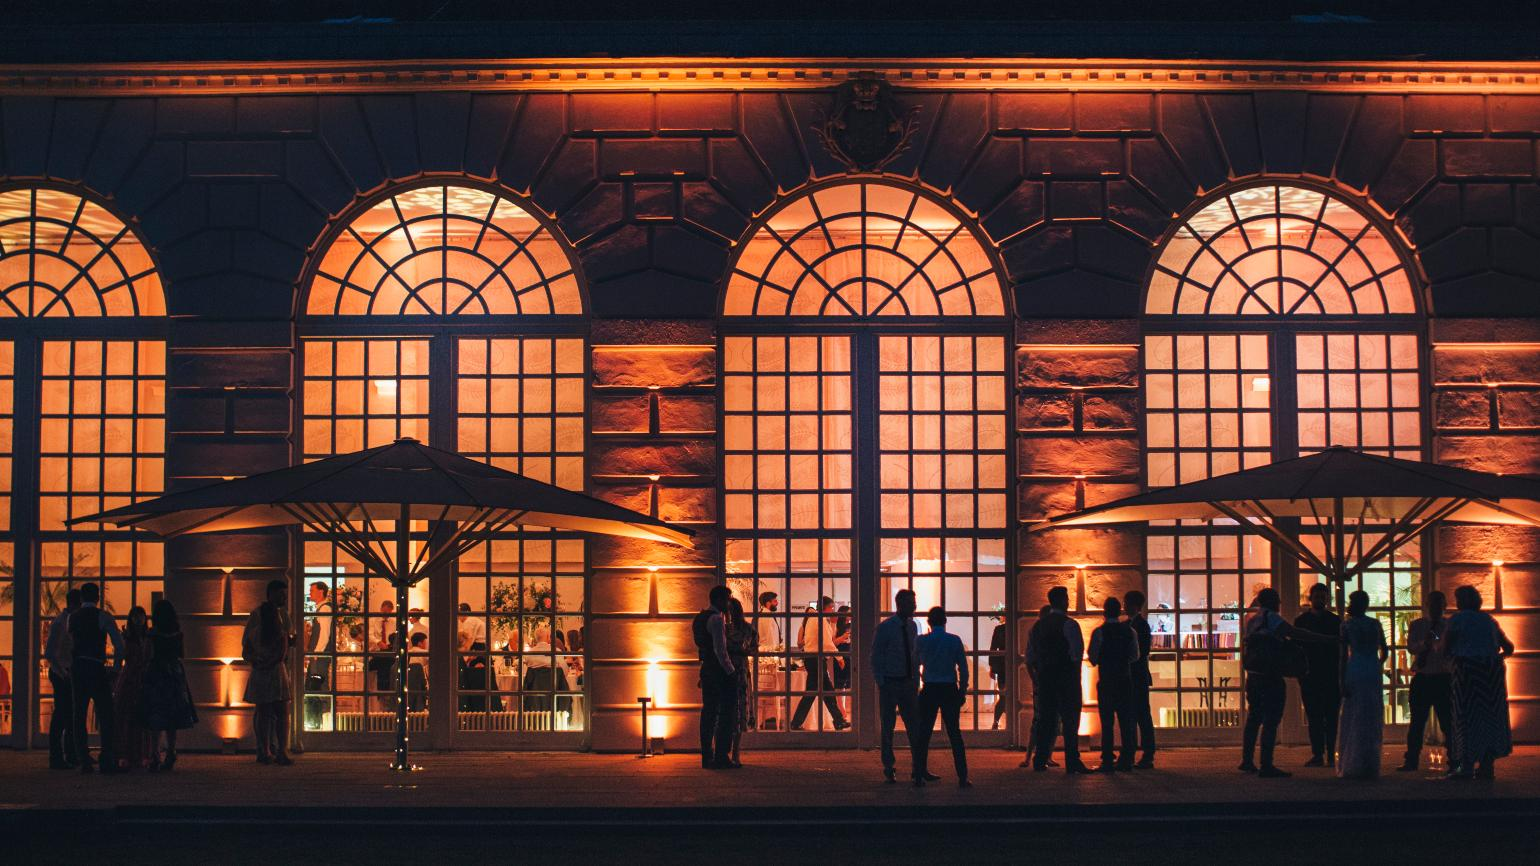 The Orangery exterior at night